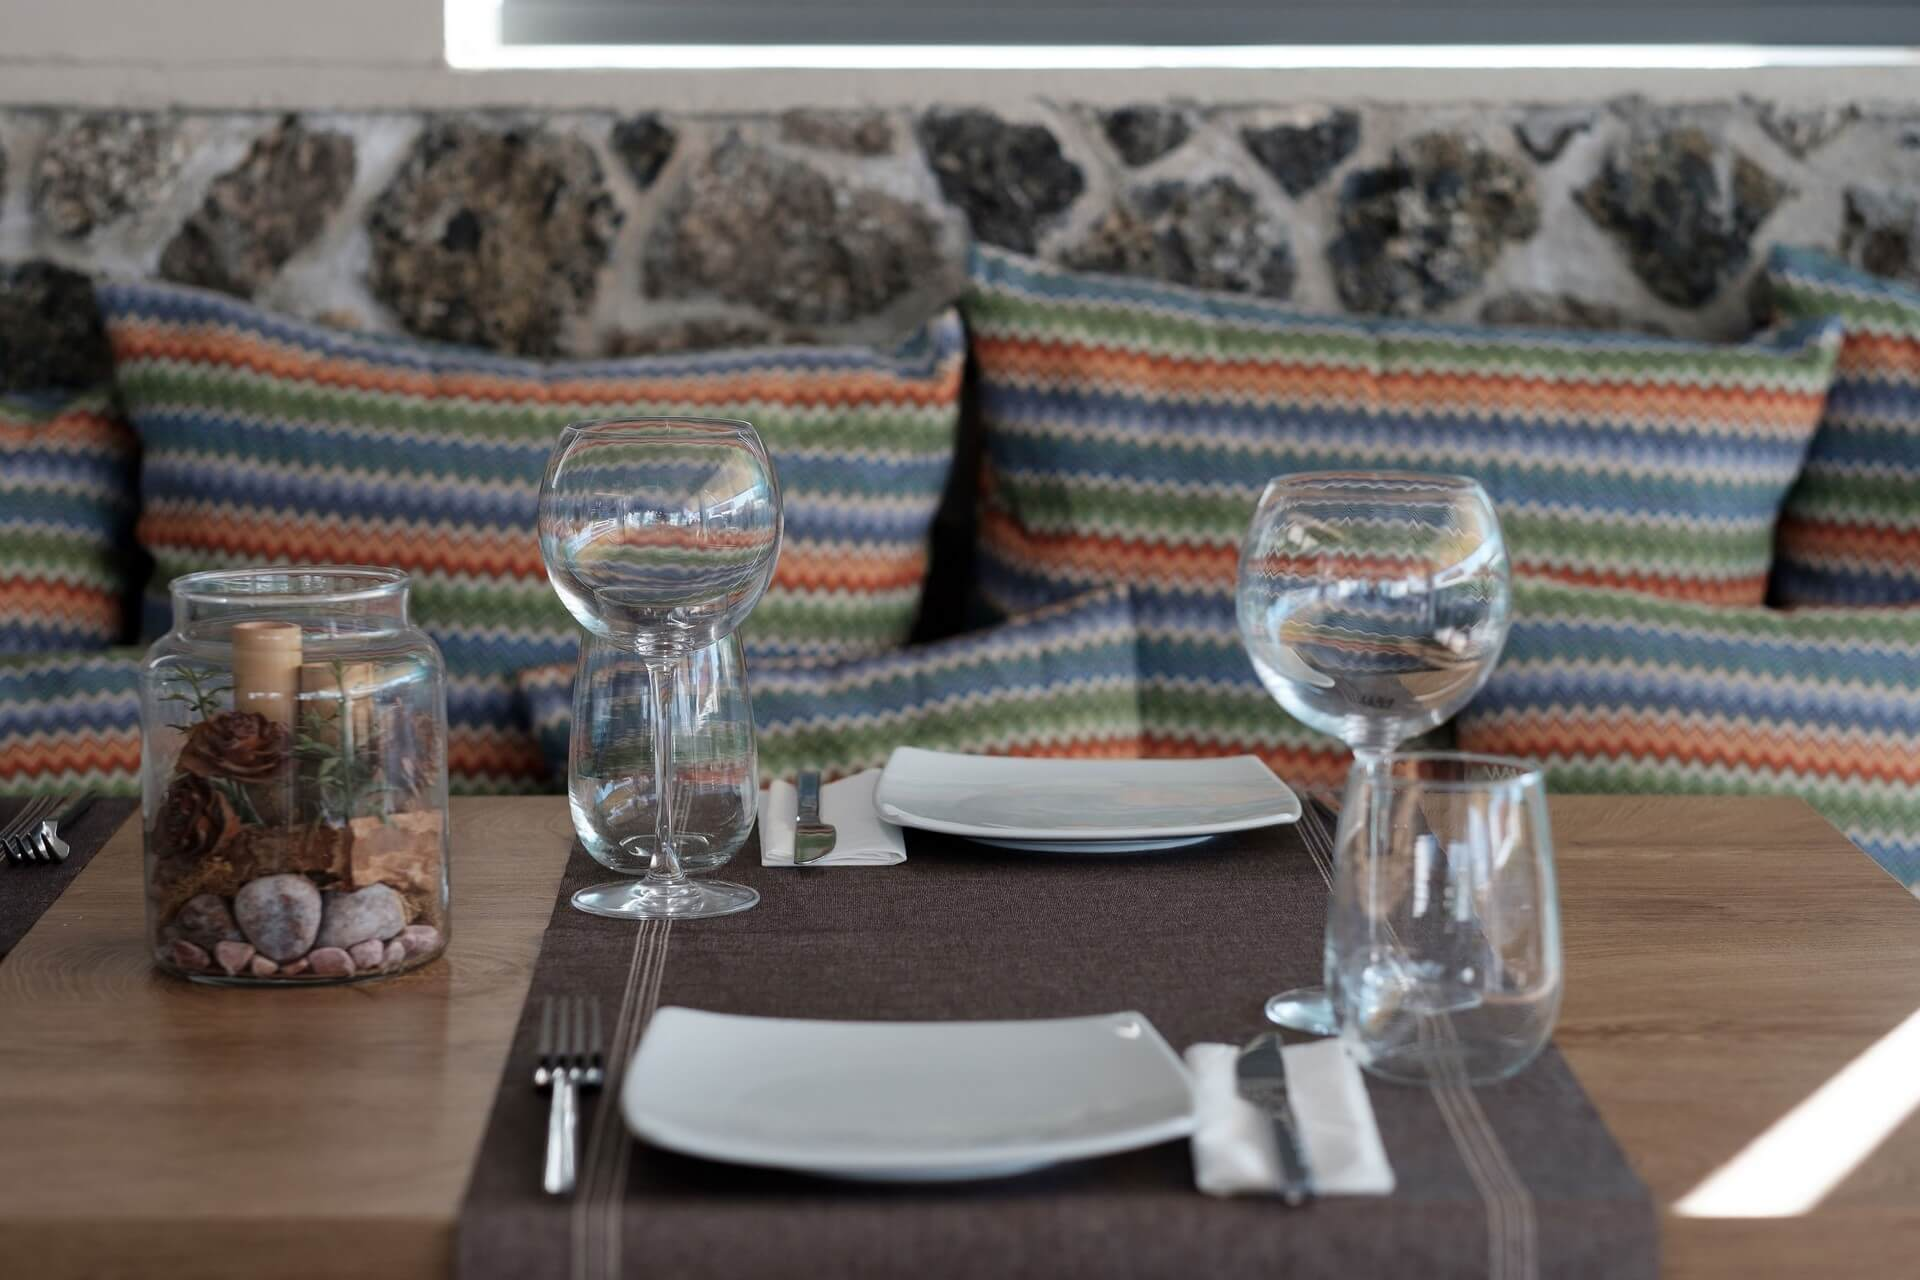 Restaurant Table Terezas Hotel Glass and Plates